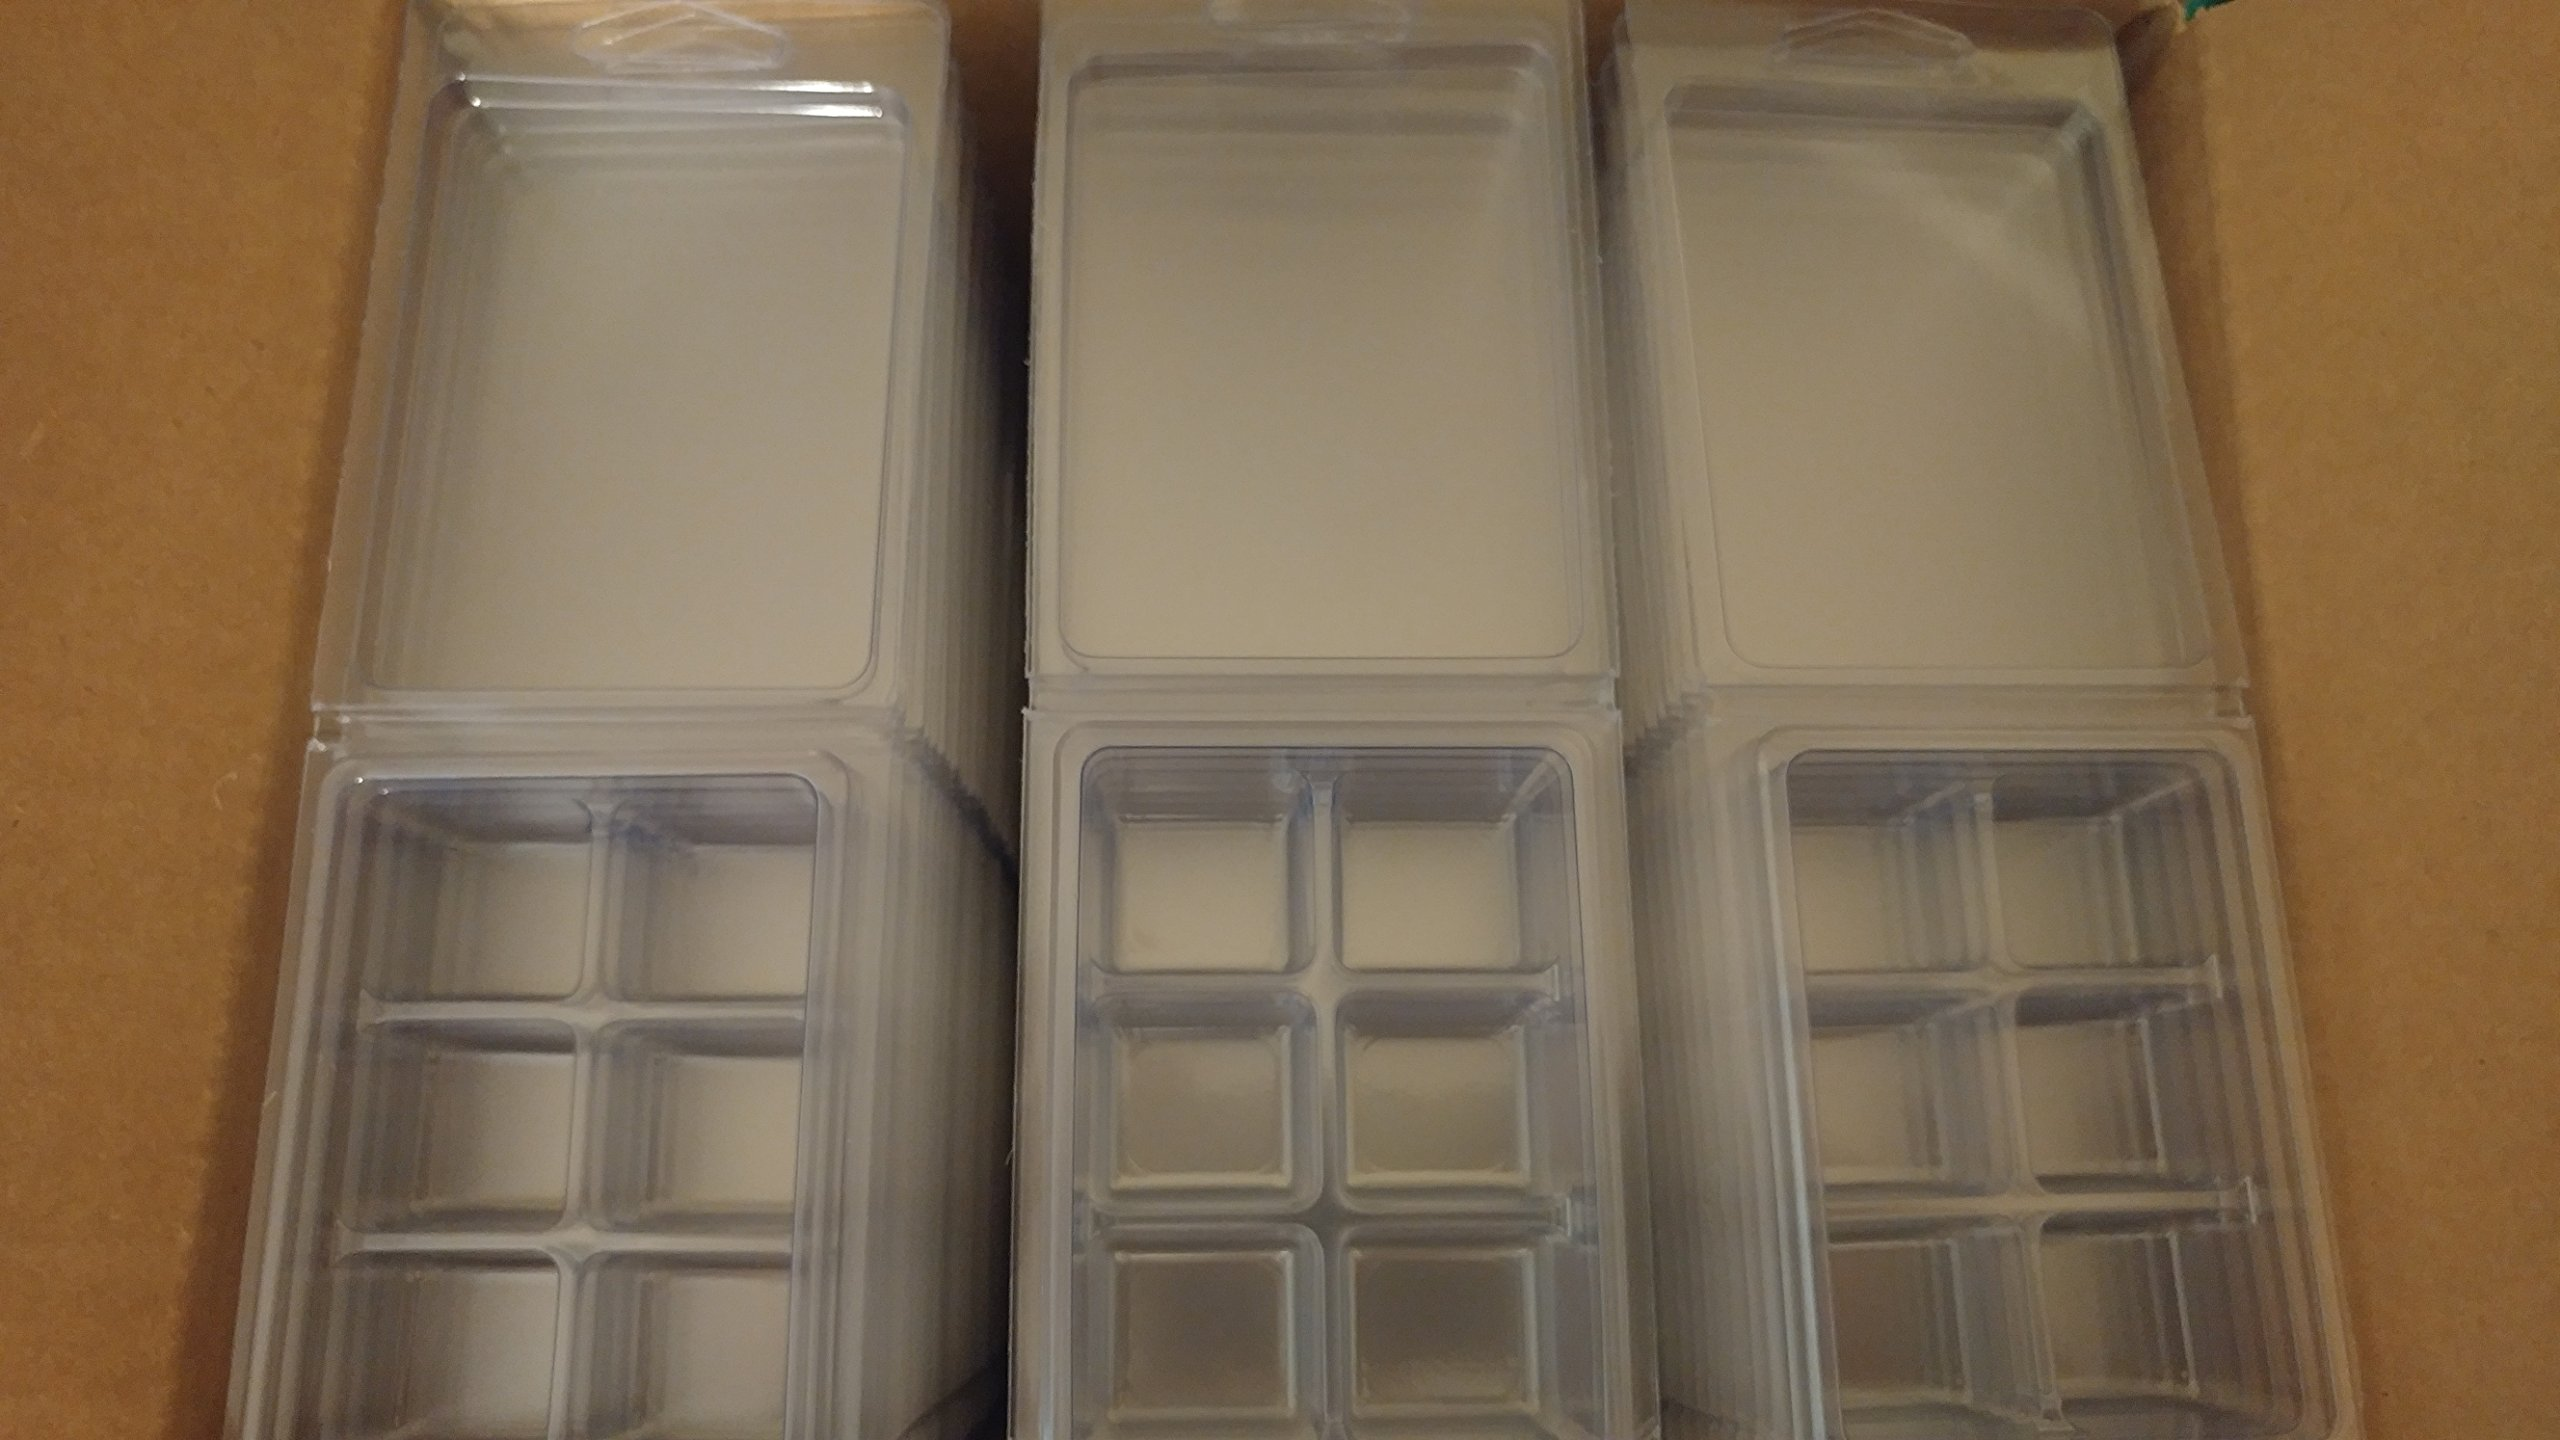 Wax Tart Clamshell Mold - 6 Cavity / Cubes per Package - 100 Pack Clear Plastic / PVC - FREE Fragrance Sample